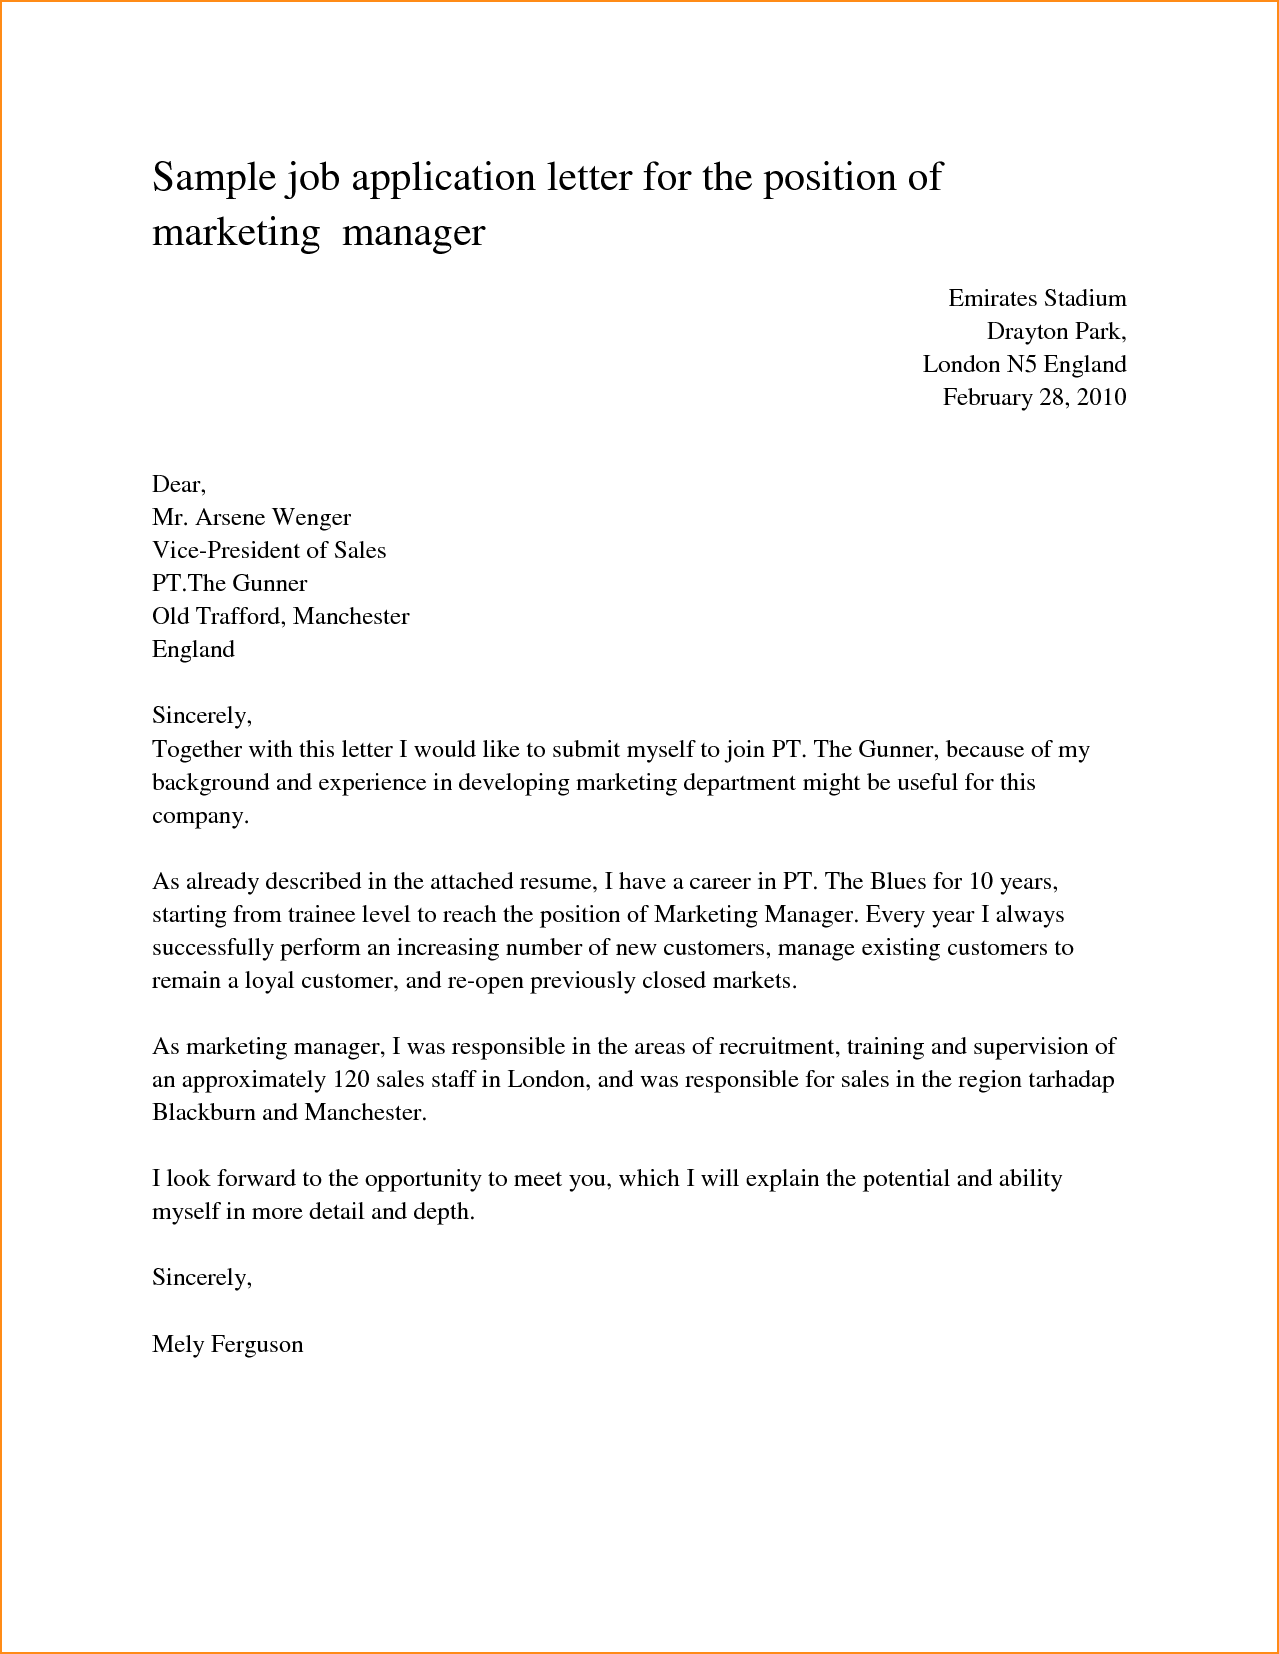 Amazing Sample Job Application Letter For The Position Marketing Manager Any Resumed  Cover Letter Sample For A Job